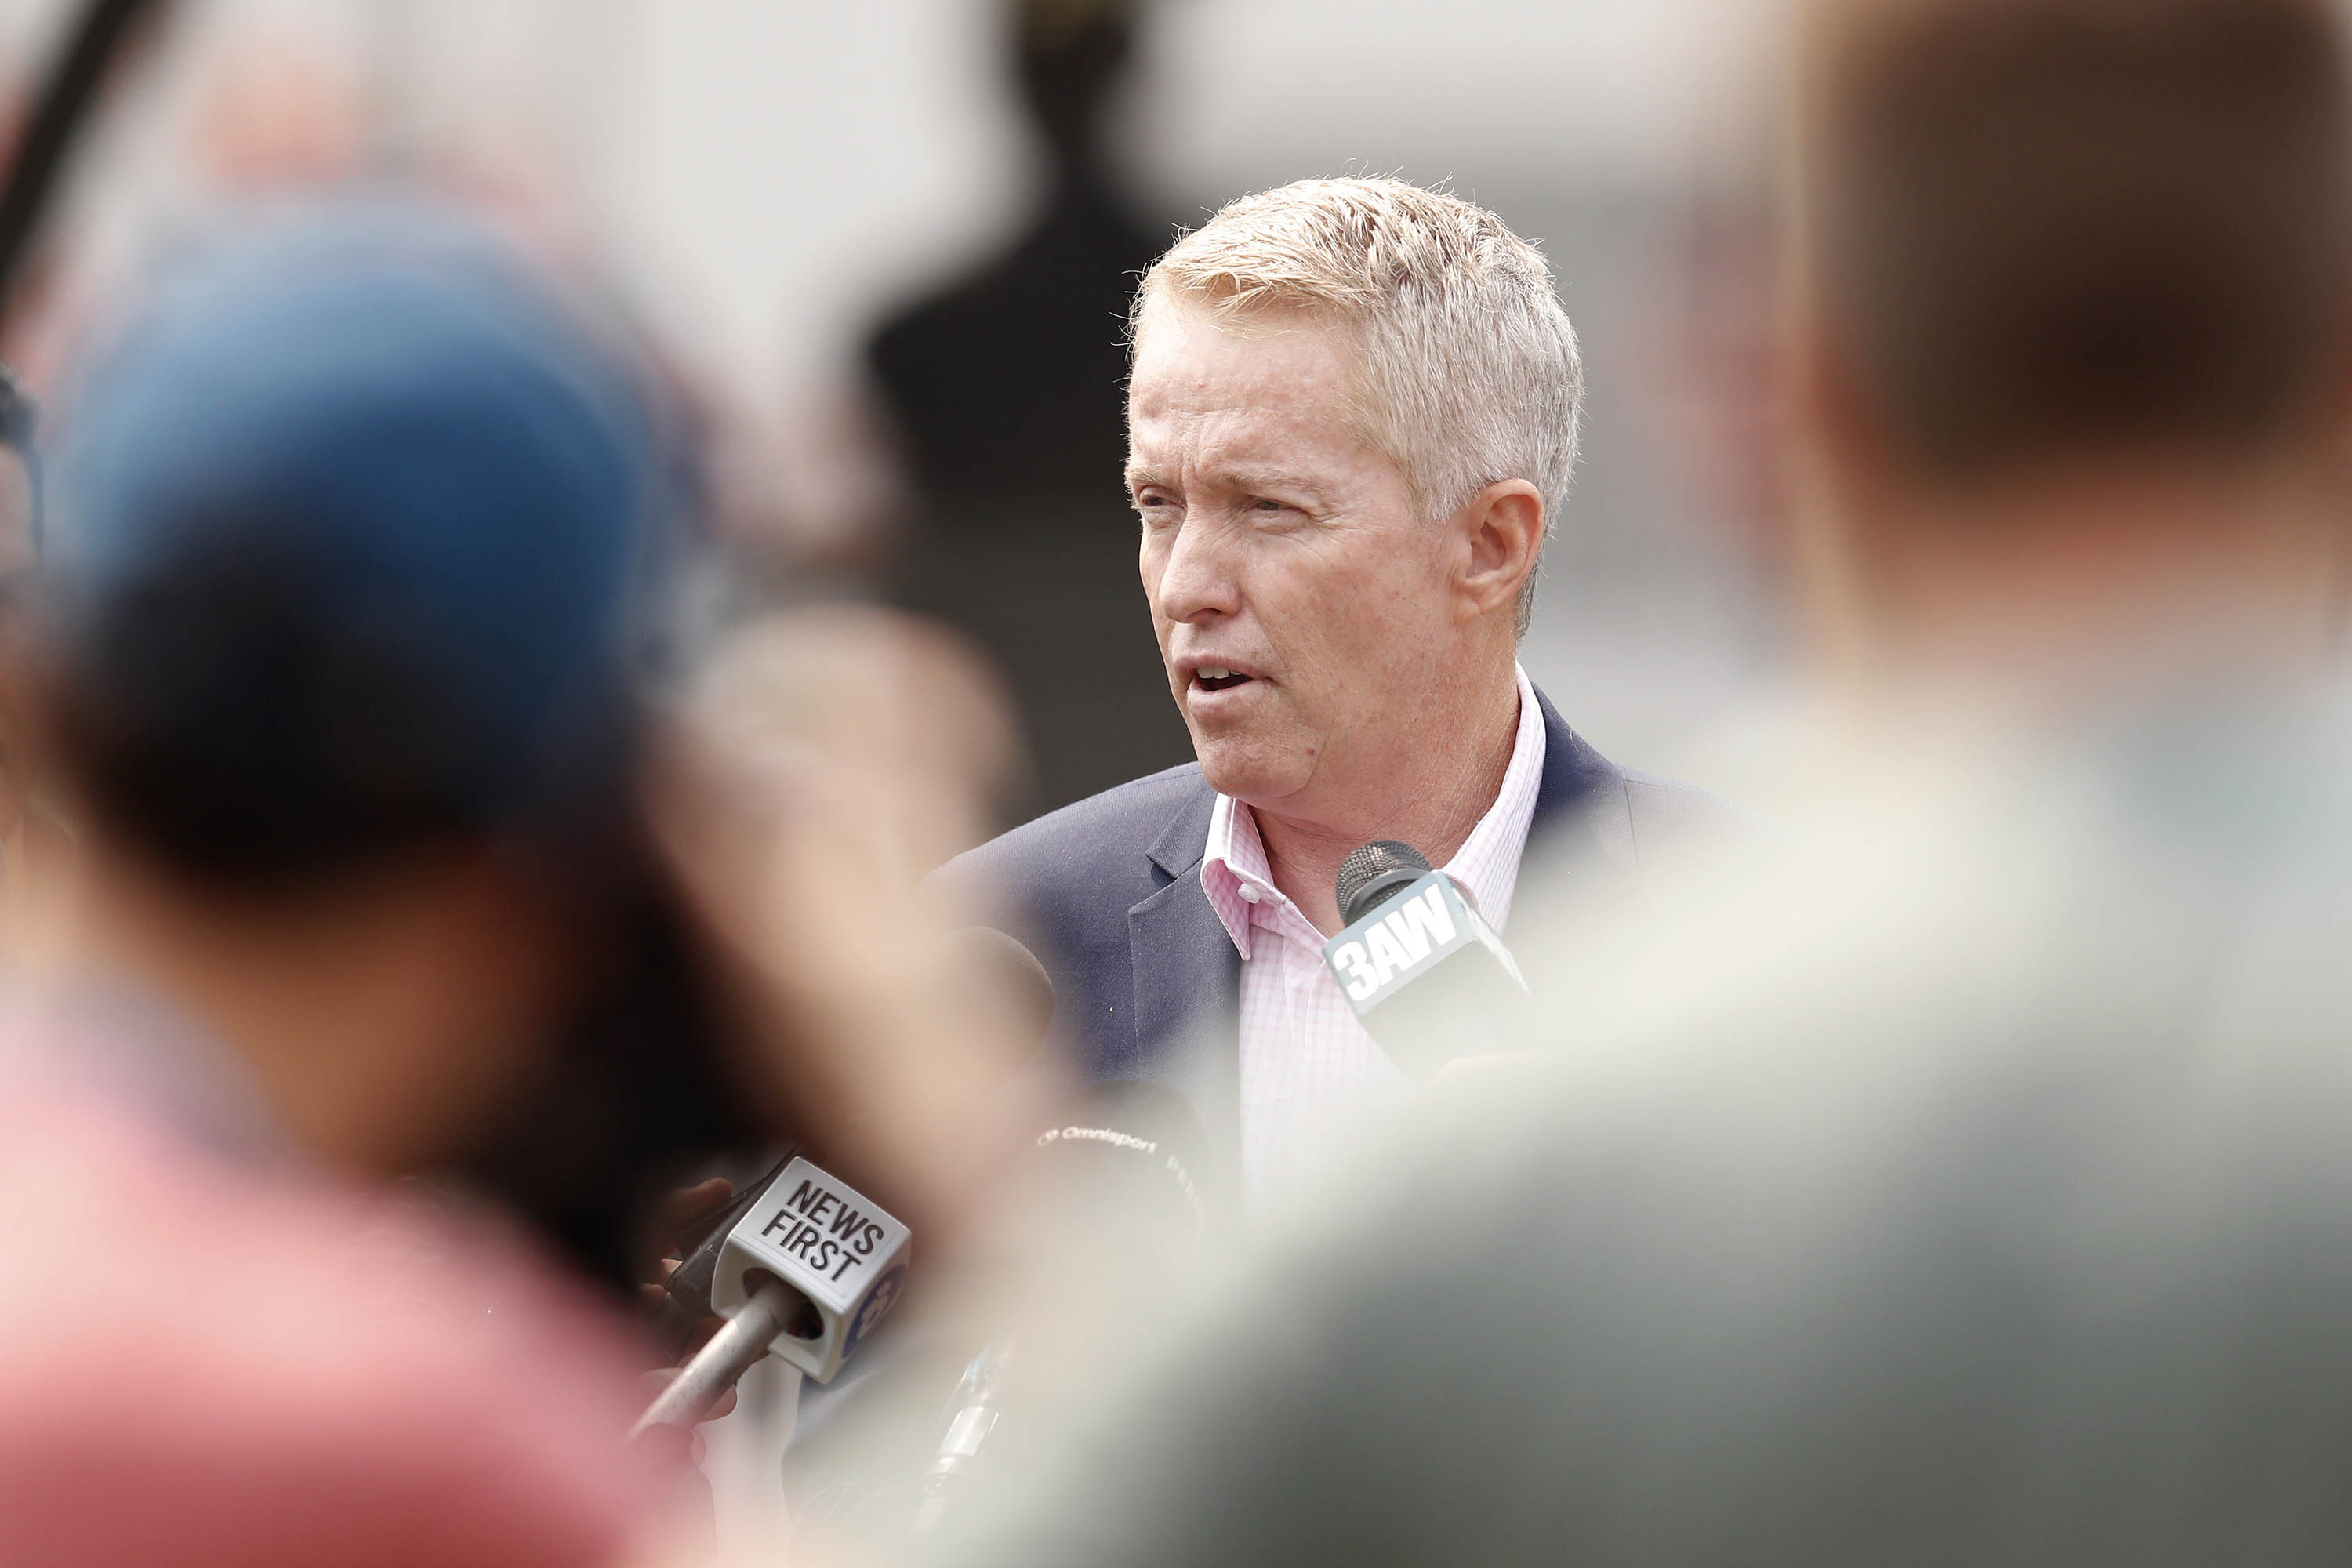 Australian Open Tournament Director Craig Tilley is pictured speaking to the media in Melbourne, Australia in January 2020.